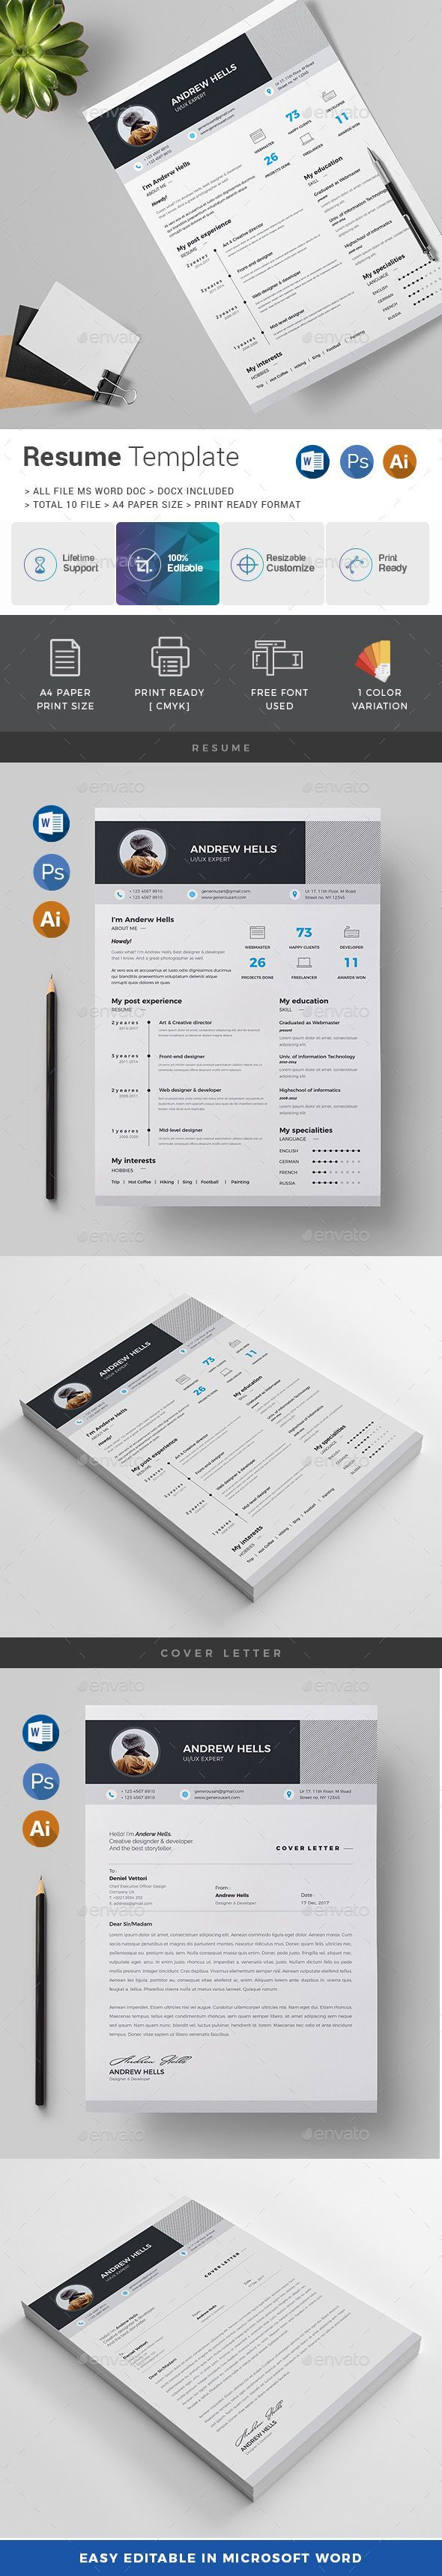 Resume Cv Template Psd Vector Eps Ai